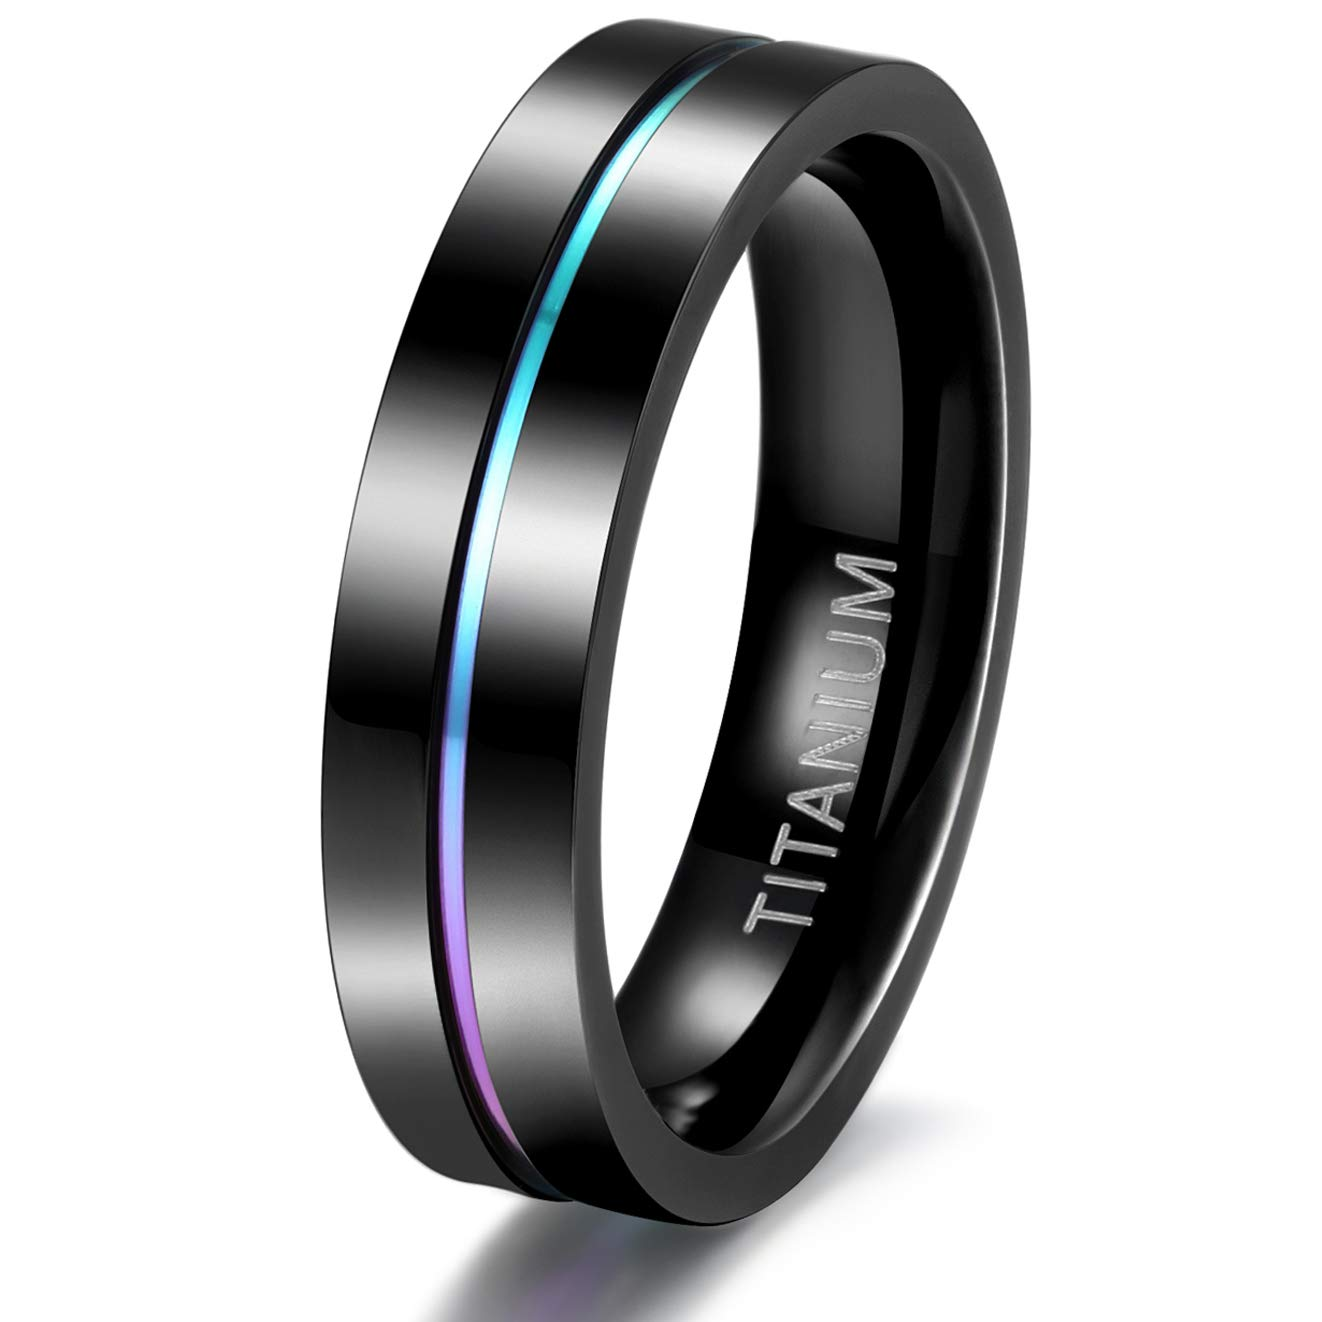 TIGRADE 5mm 7mm Rainbow Titanium Ring Colorful Thin Groove Wedding Band Couple Rings Size 3.5-14